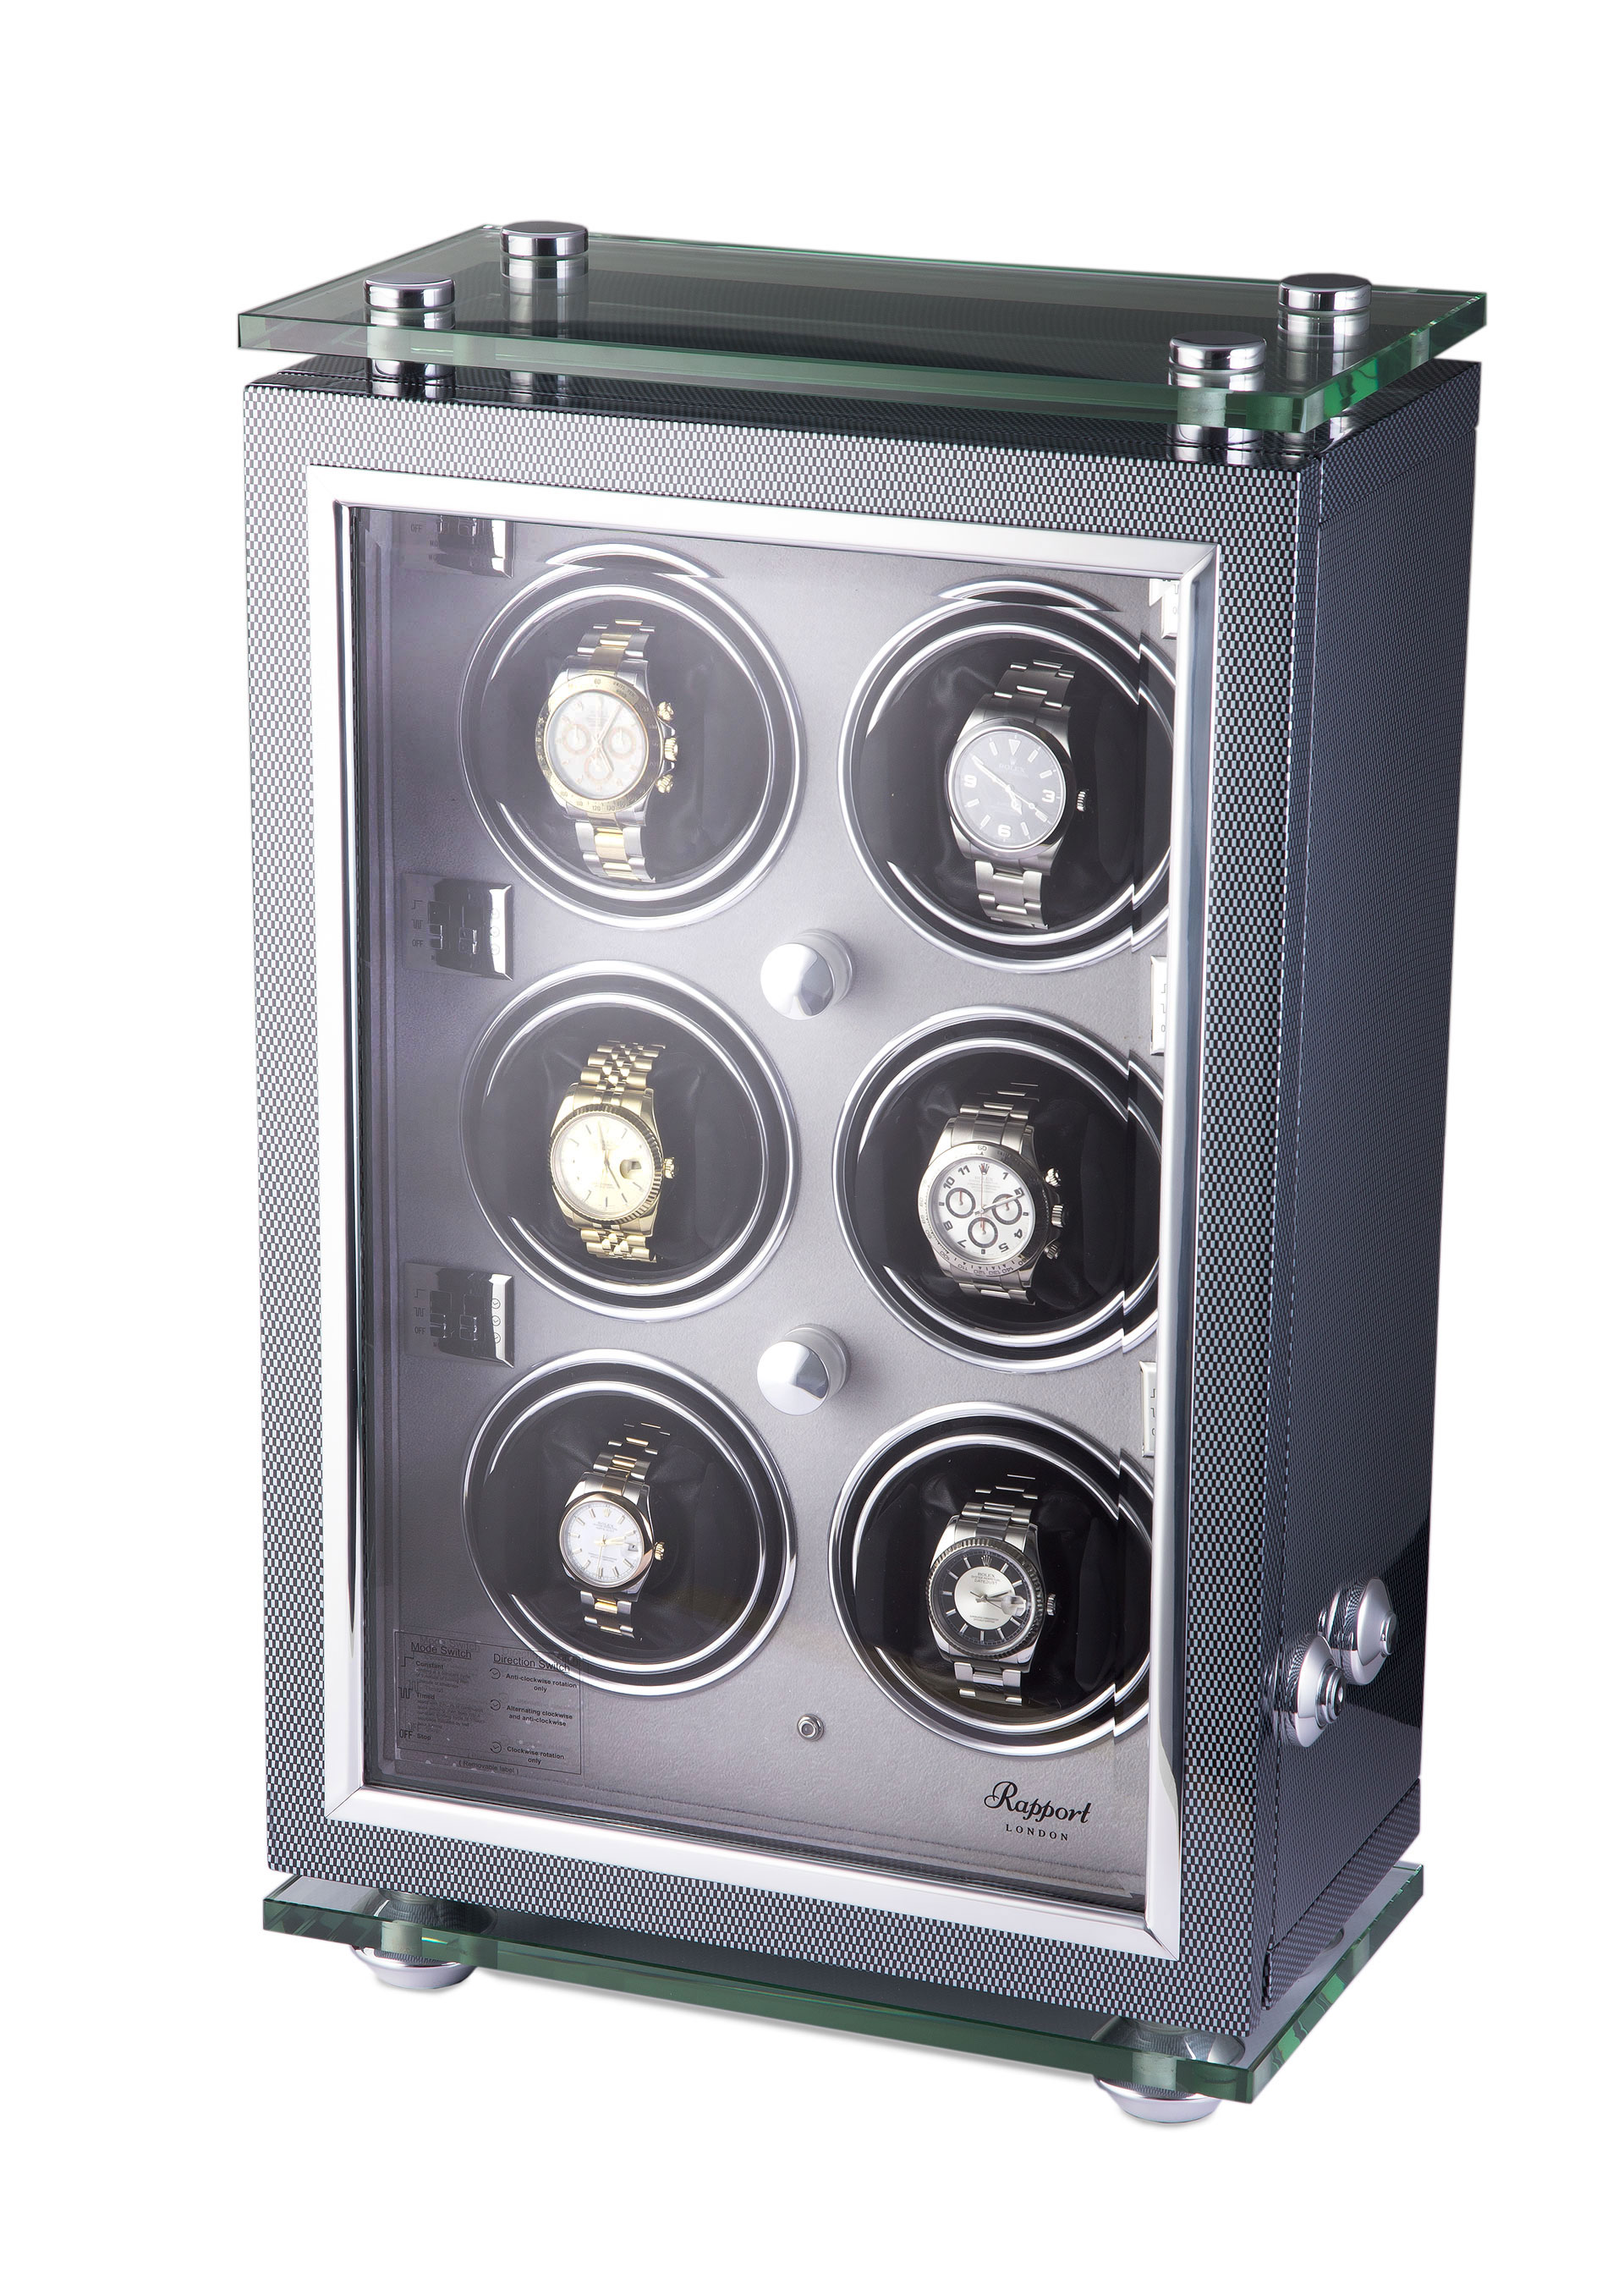 6 Watch Winder Cabinet